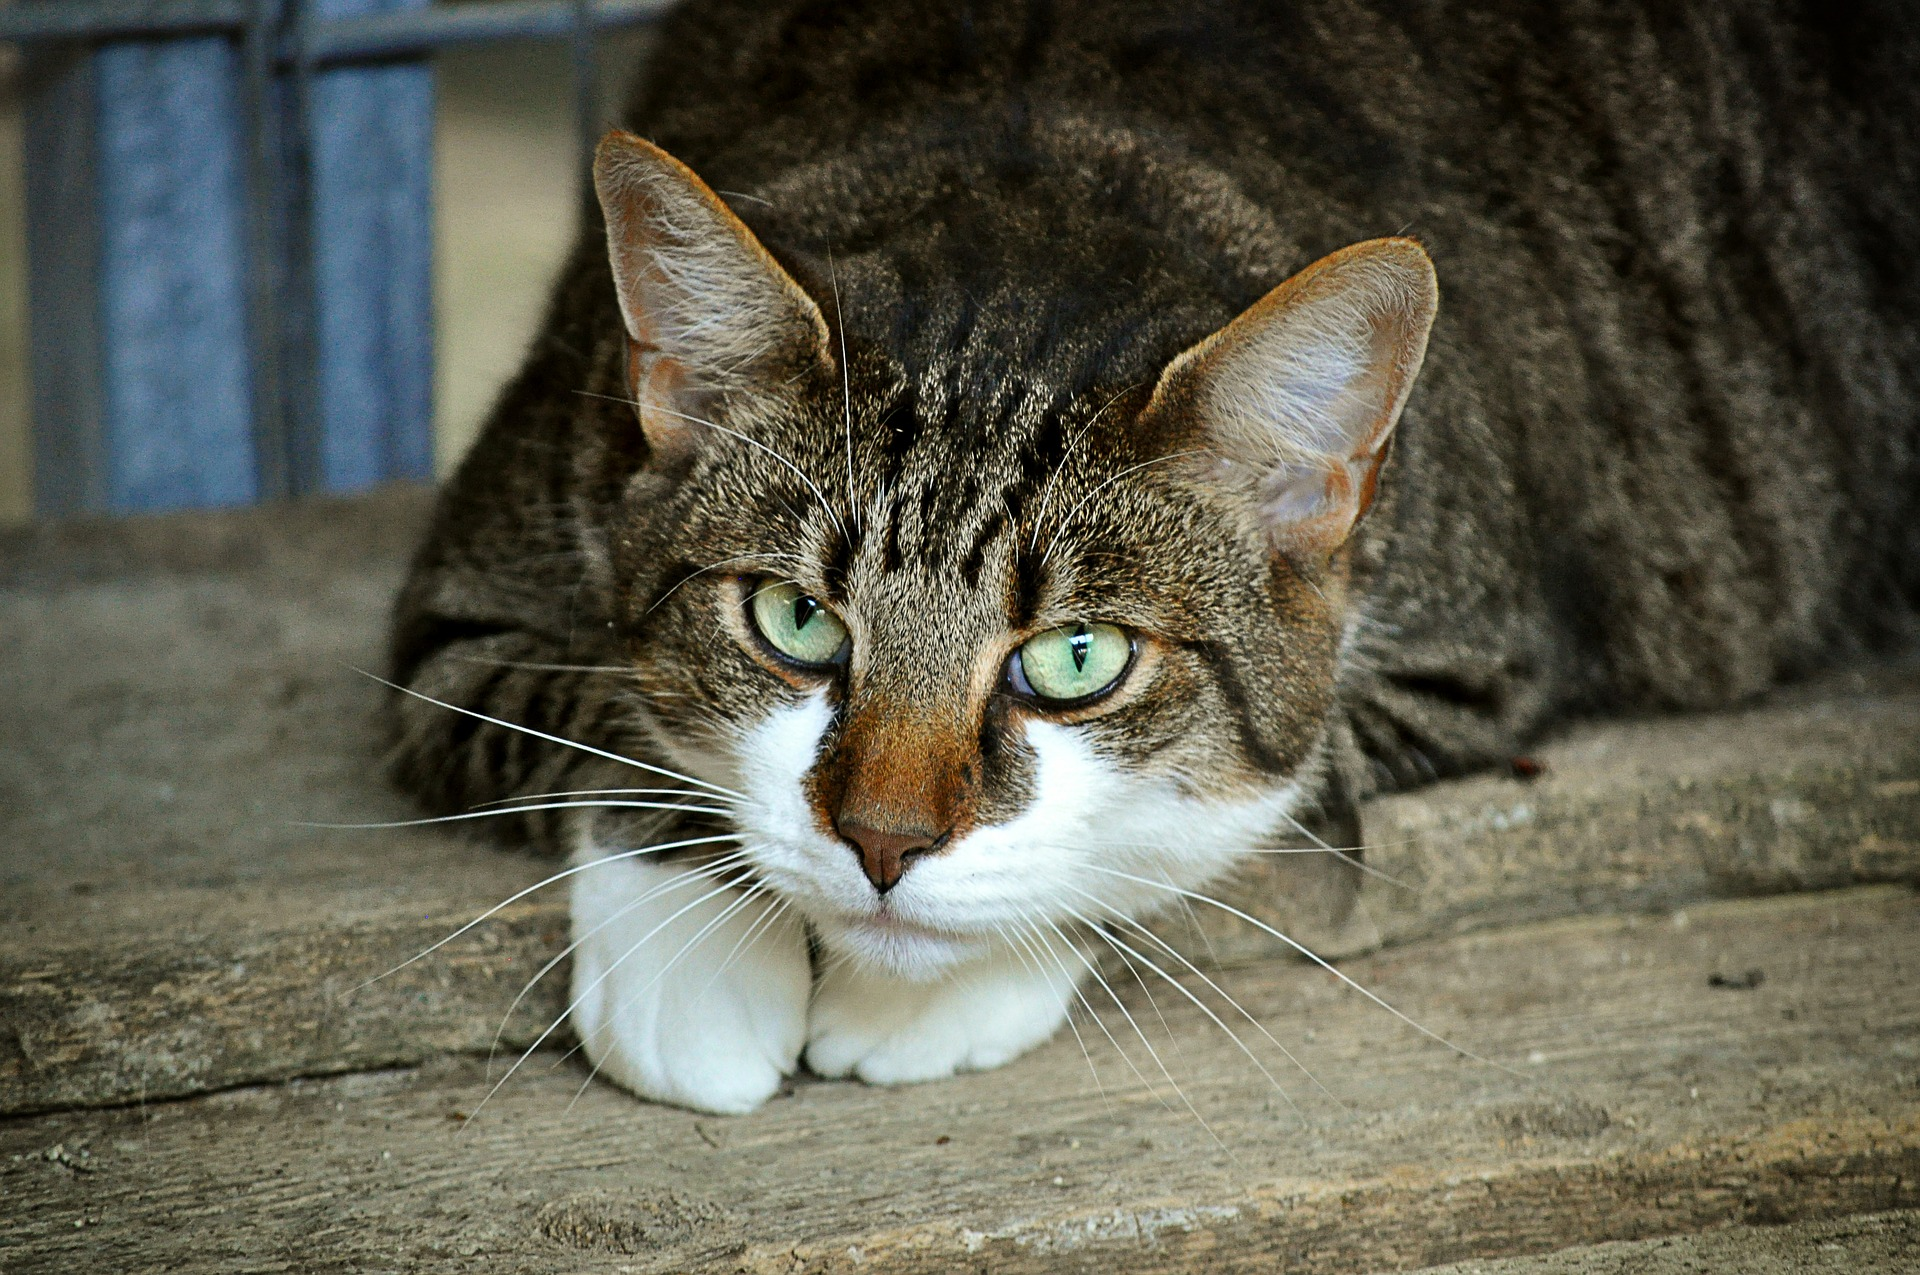 Animaux ferme chat